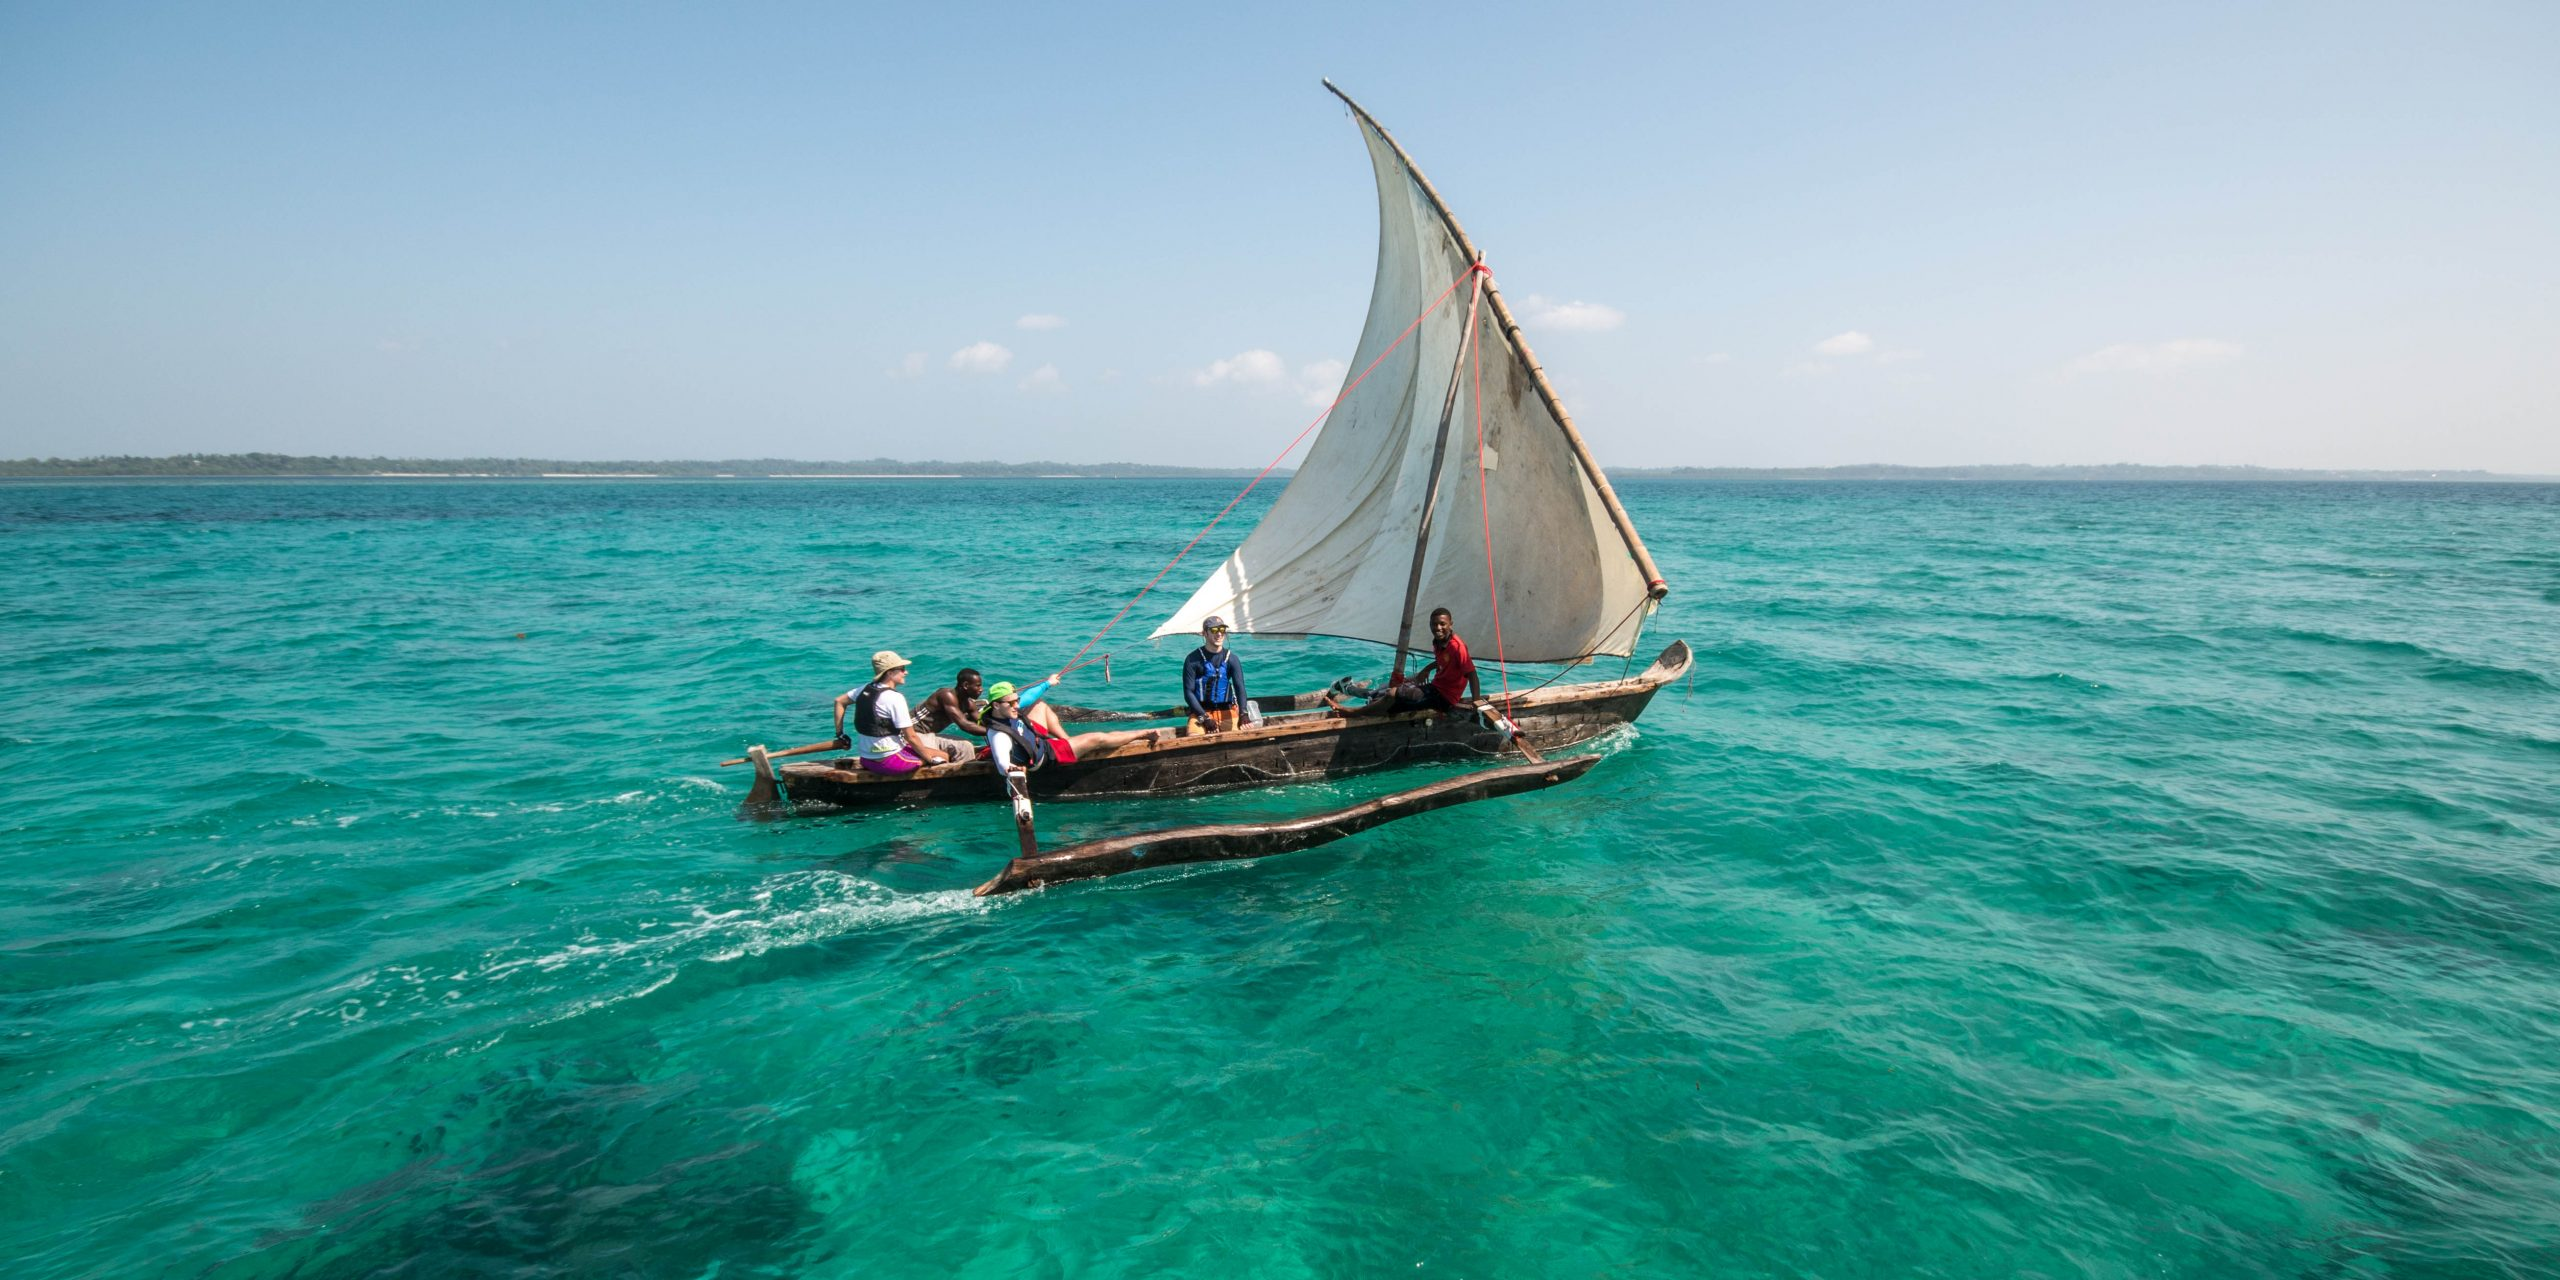 The Ngalawa Cup is held in traditional fishing boats with lanteen sails. Photo 2016 Gnalawa Cup.